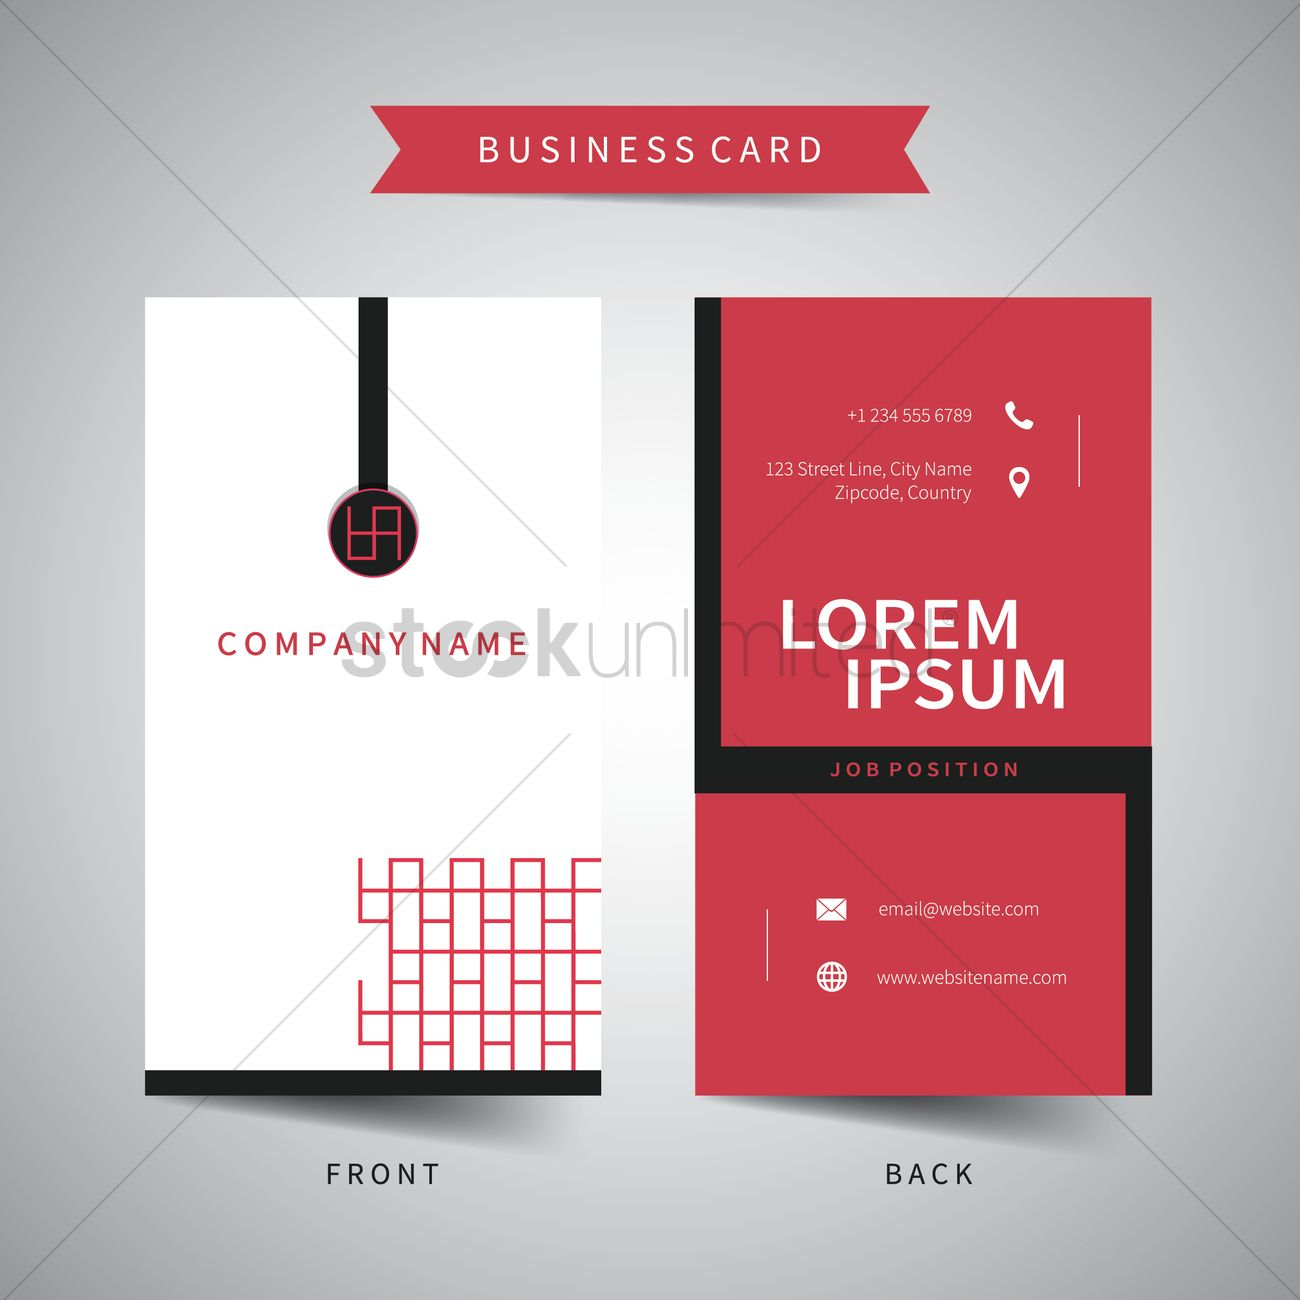 Business card template Vector Image - 1822201 | StockUnlimited